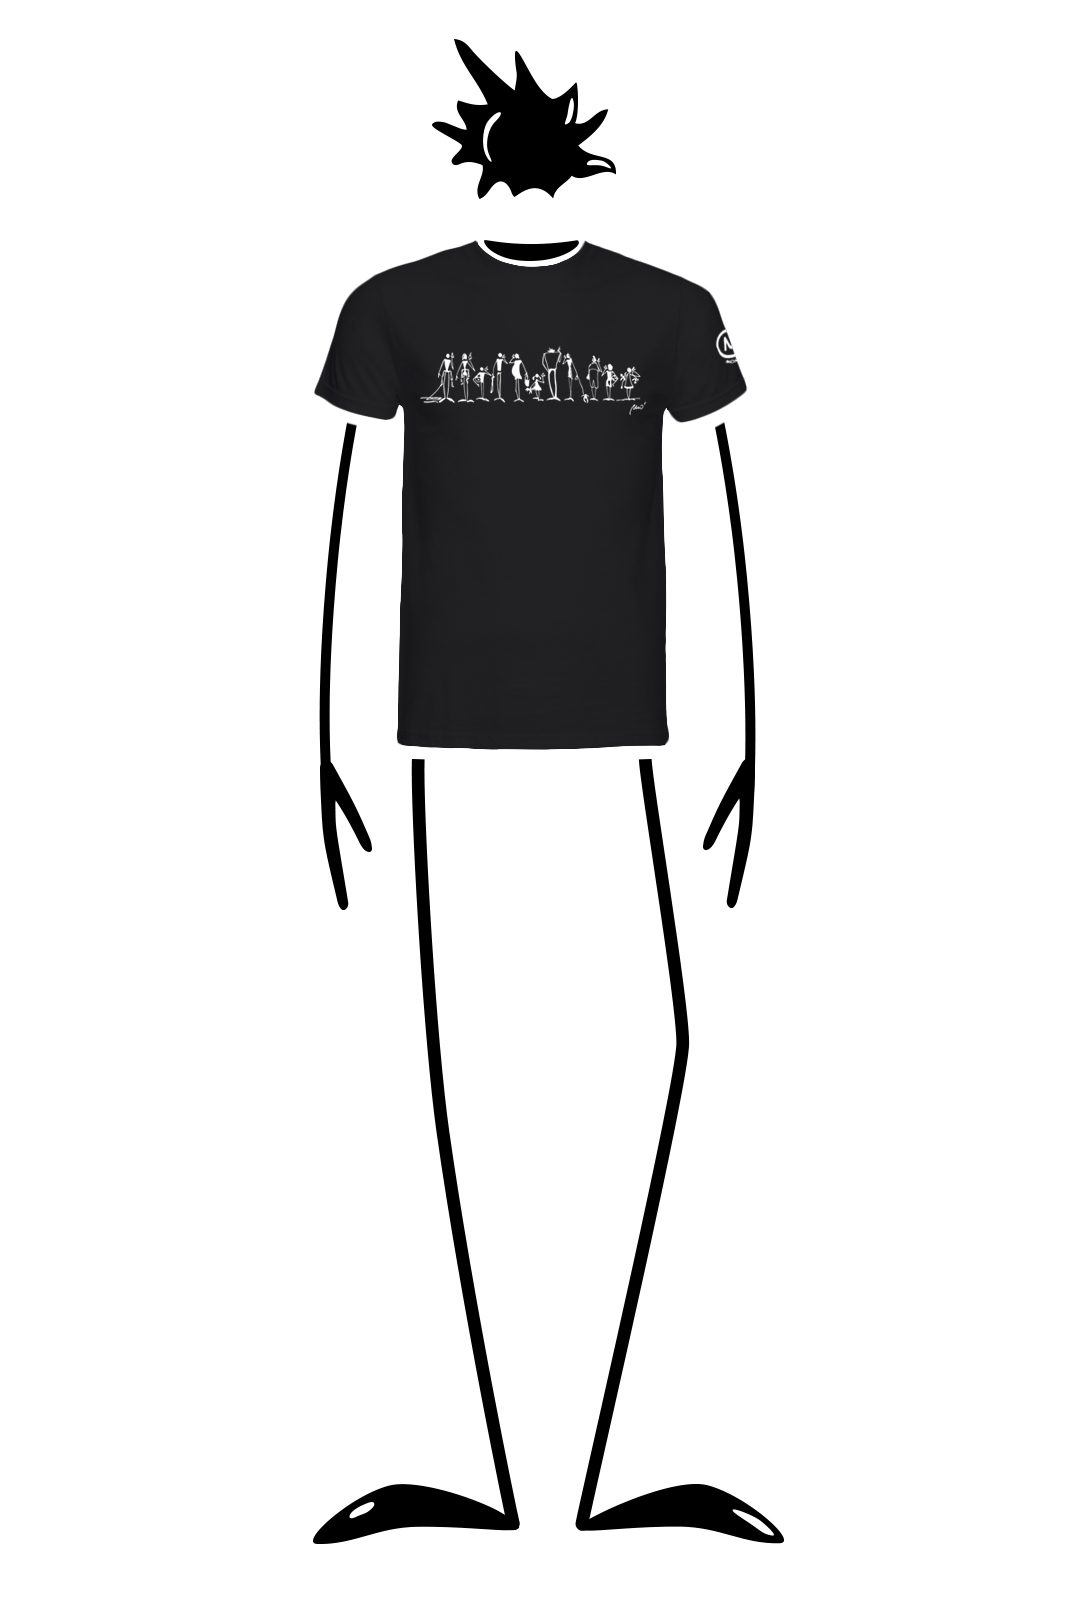 t-shirt men black HASH Monvic iphone